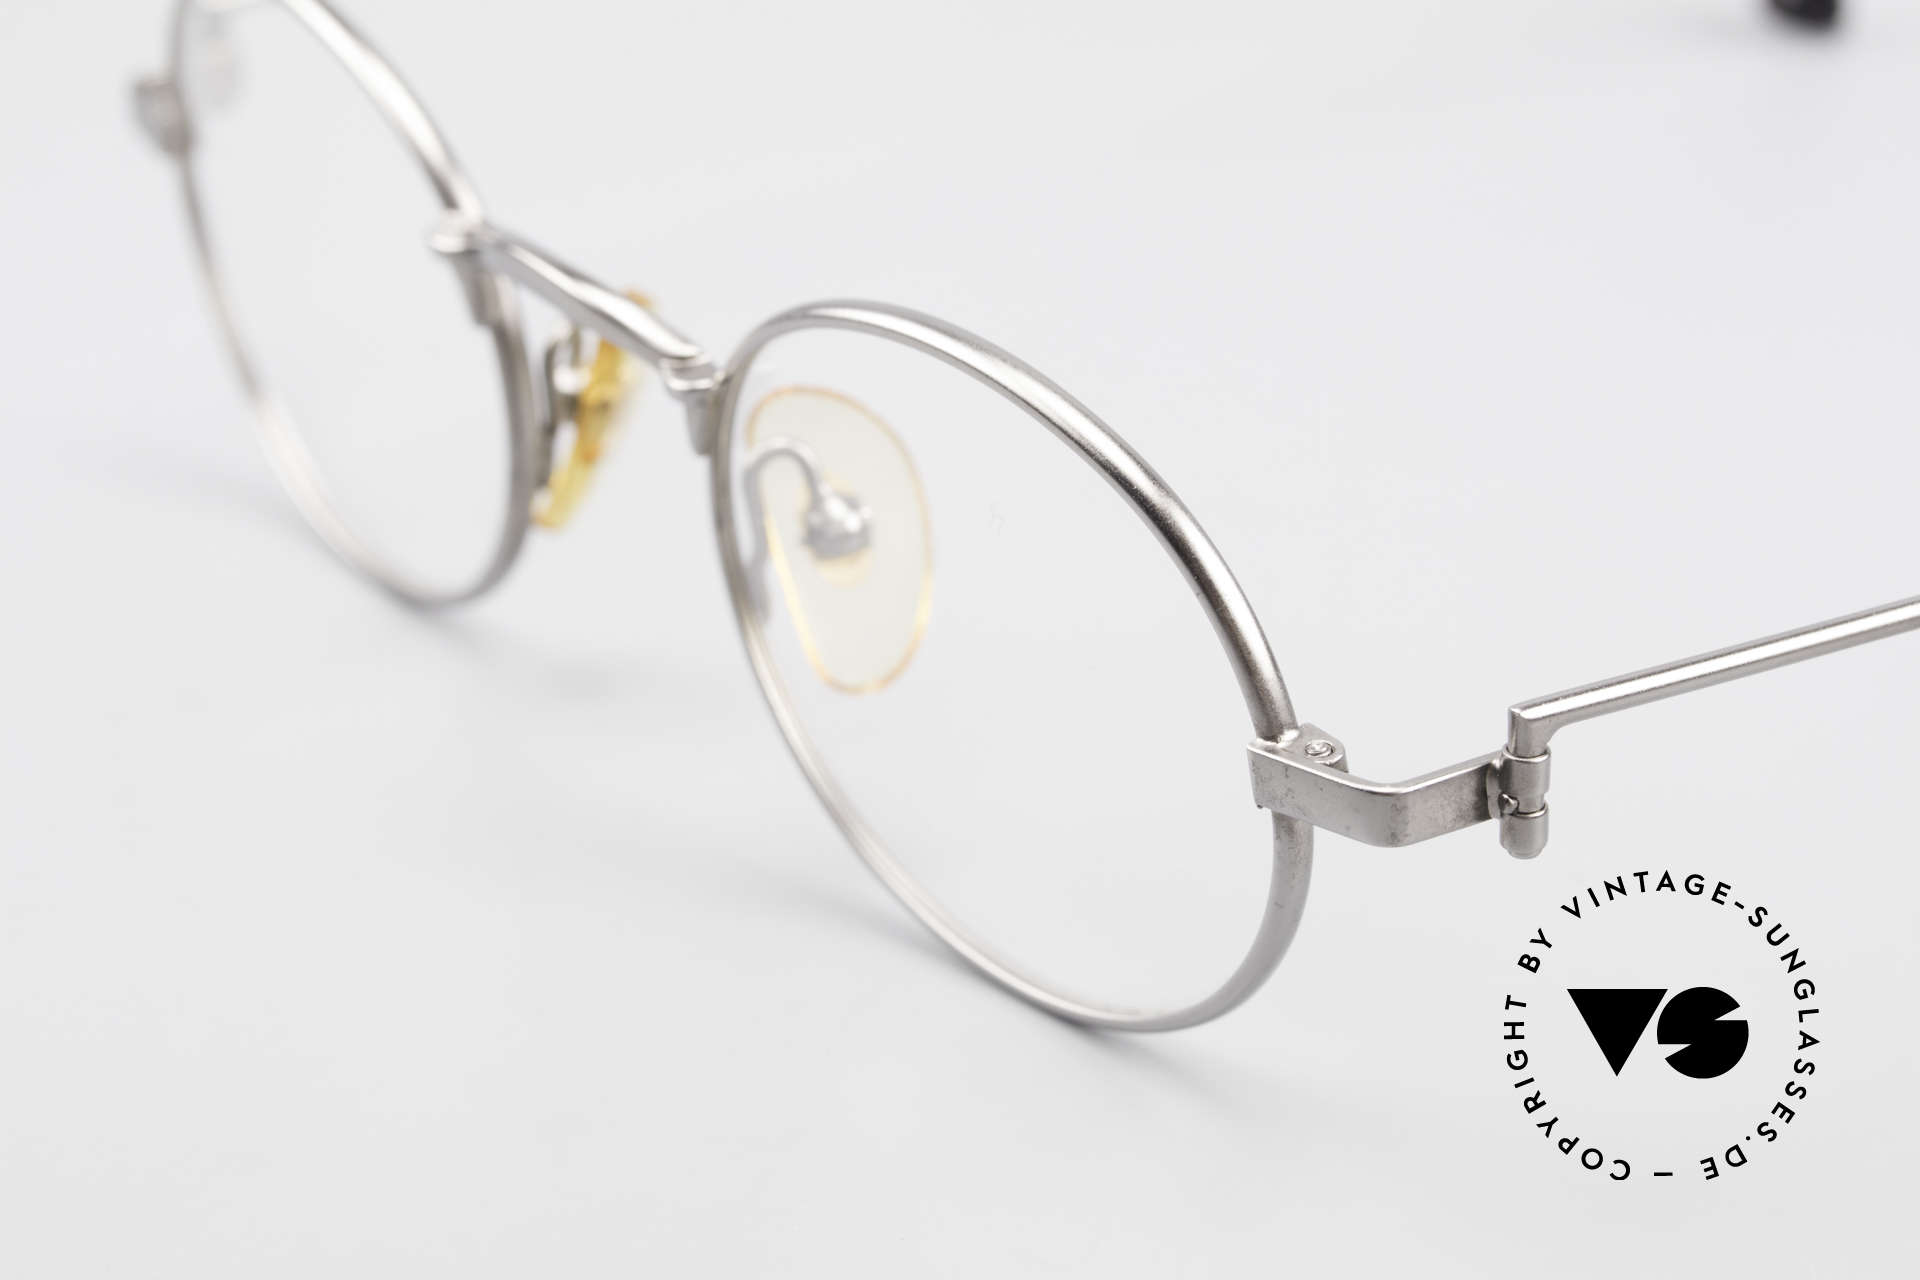 W Proksch's M31/11 Oval Glasses 90's Avantgarde, since 1998 the company Kaneko produces licensed, Made for Men